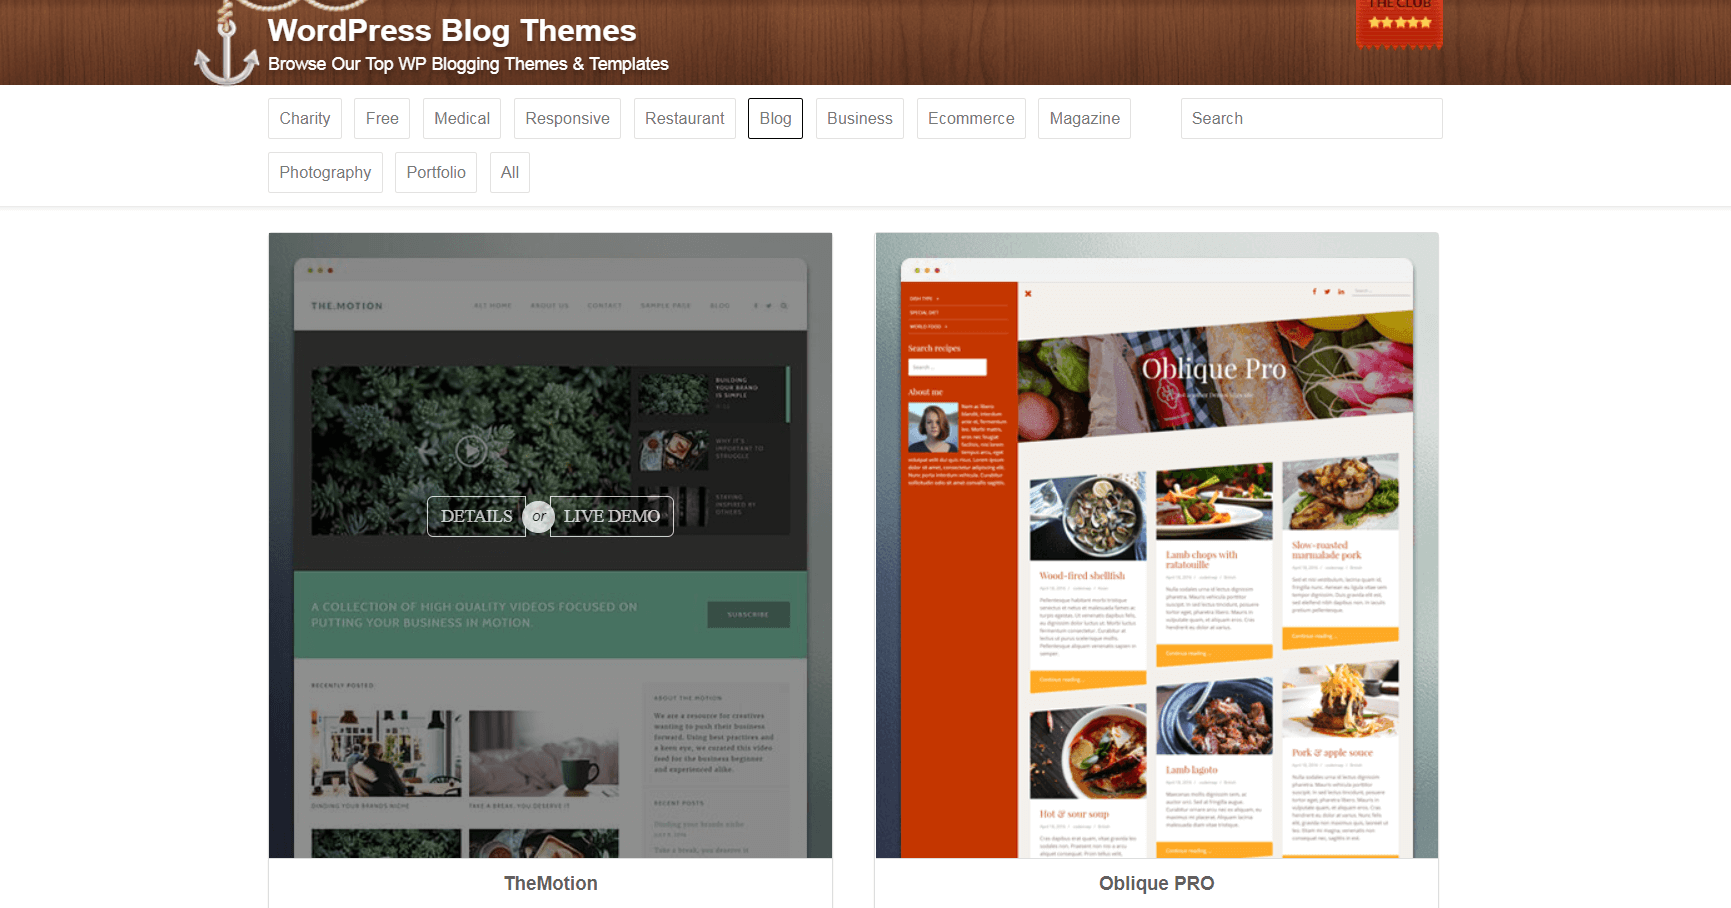 Blog themes on ThemeIsle.